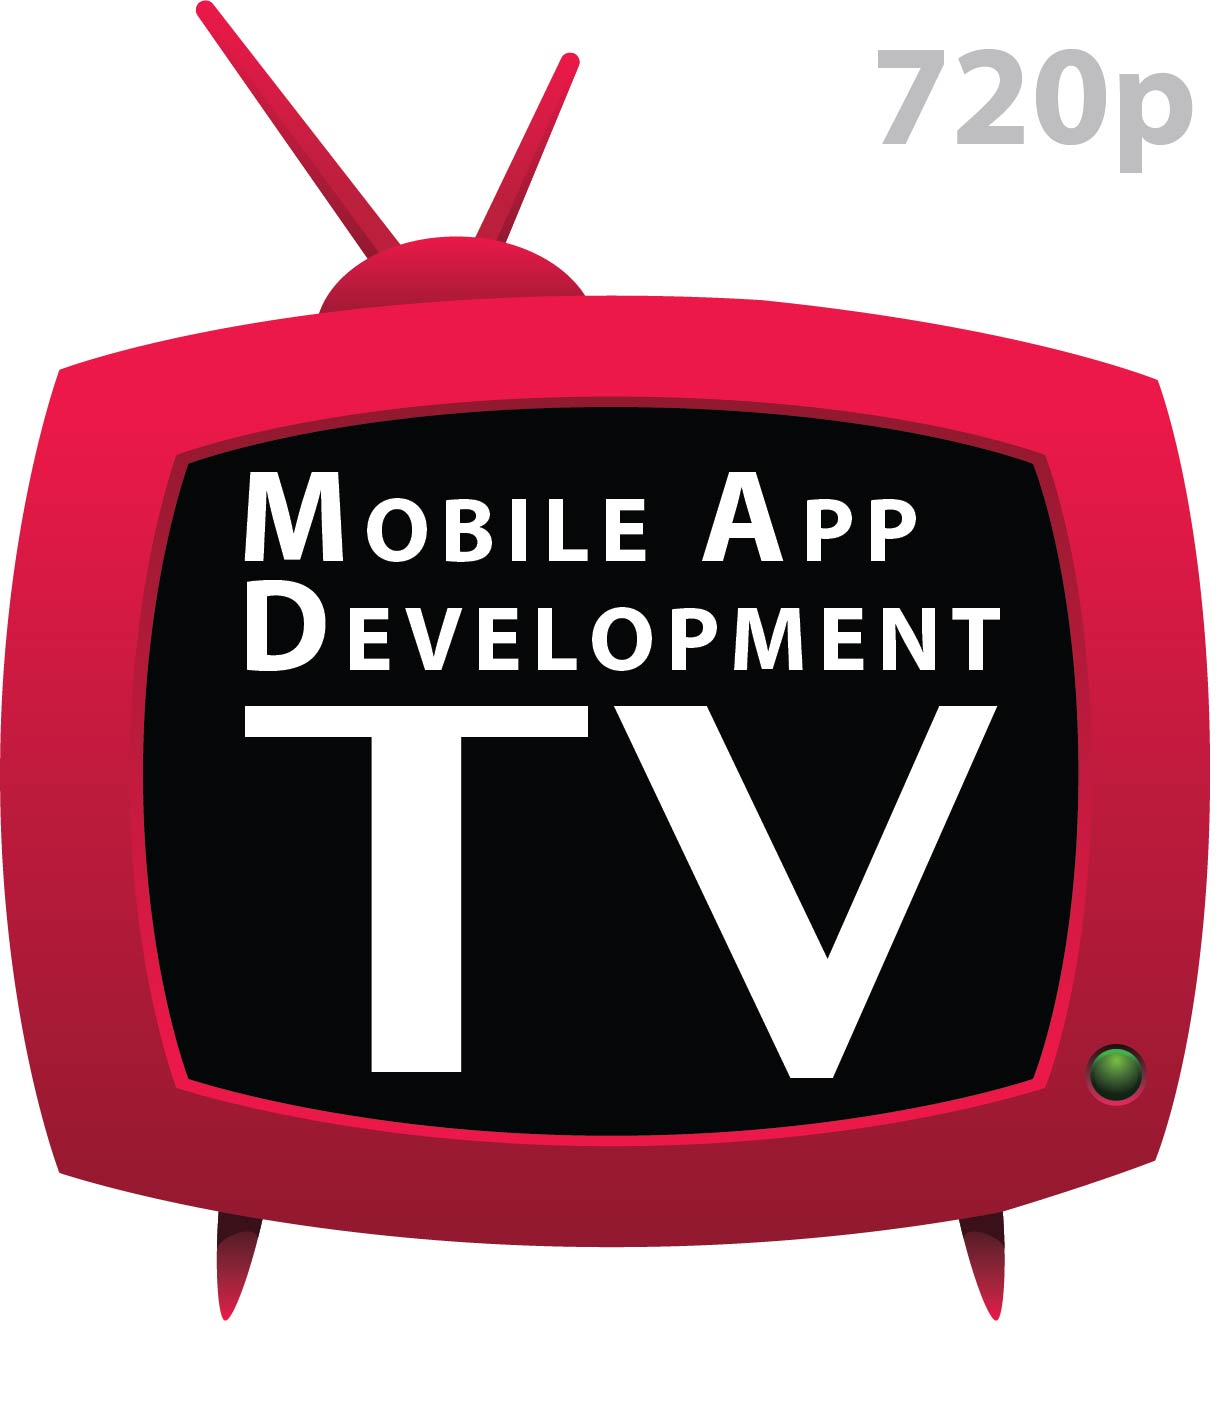 Mobile App Development TV (Video – 720p)